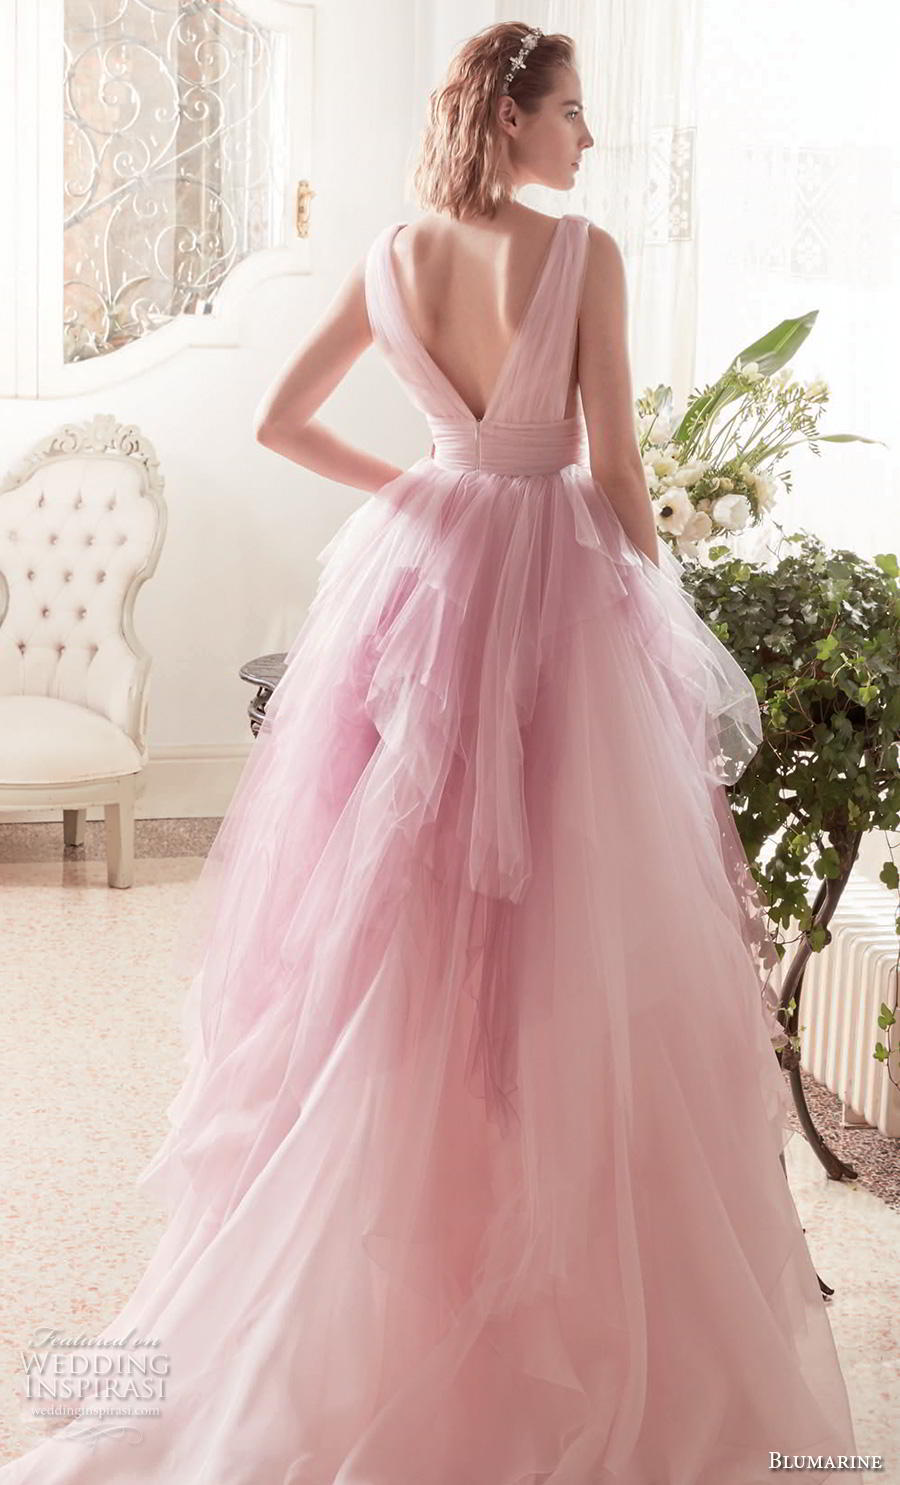 blumarine sposa 2019 bridal sleeveless deep v neck ruched bodice tiered tulle skirt romantic pink blush wedding dress v back chapel train (12) bv